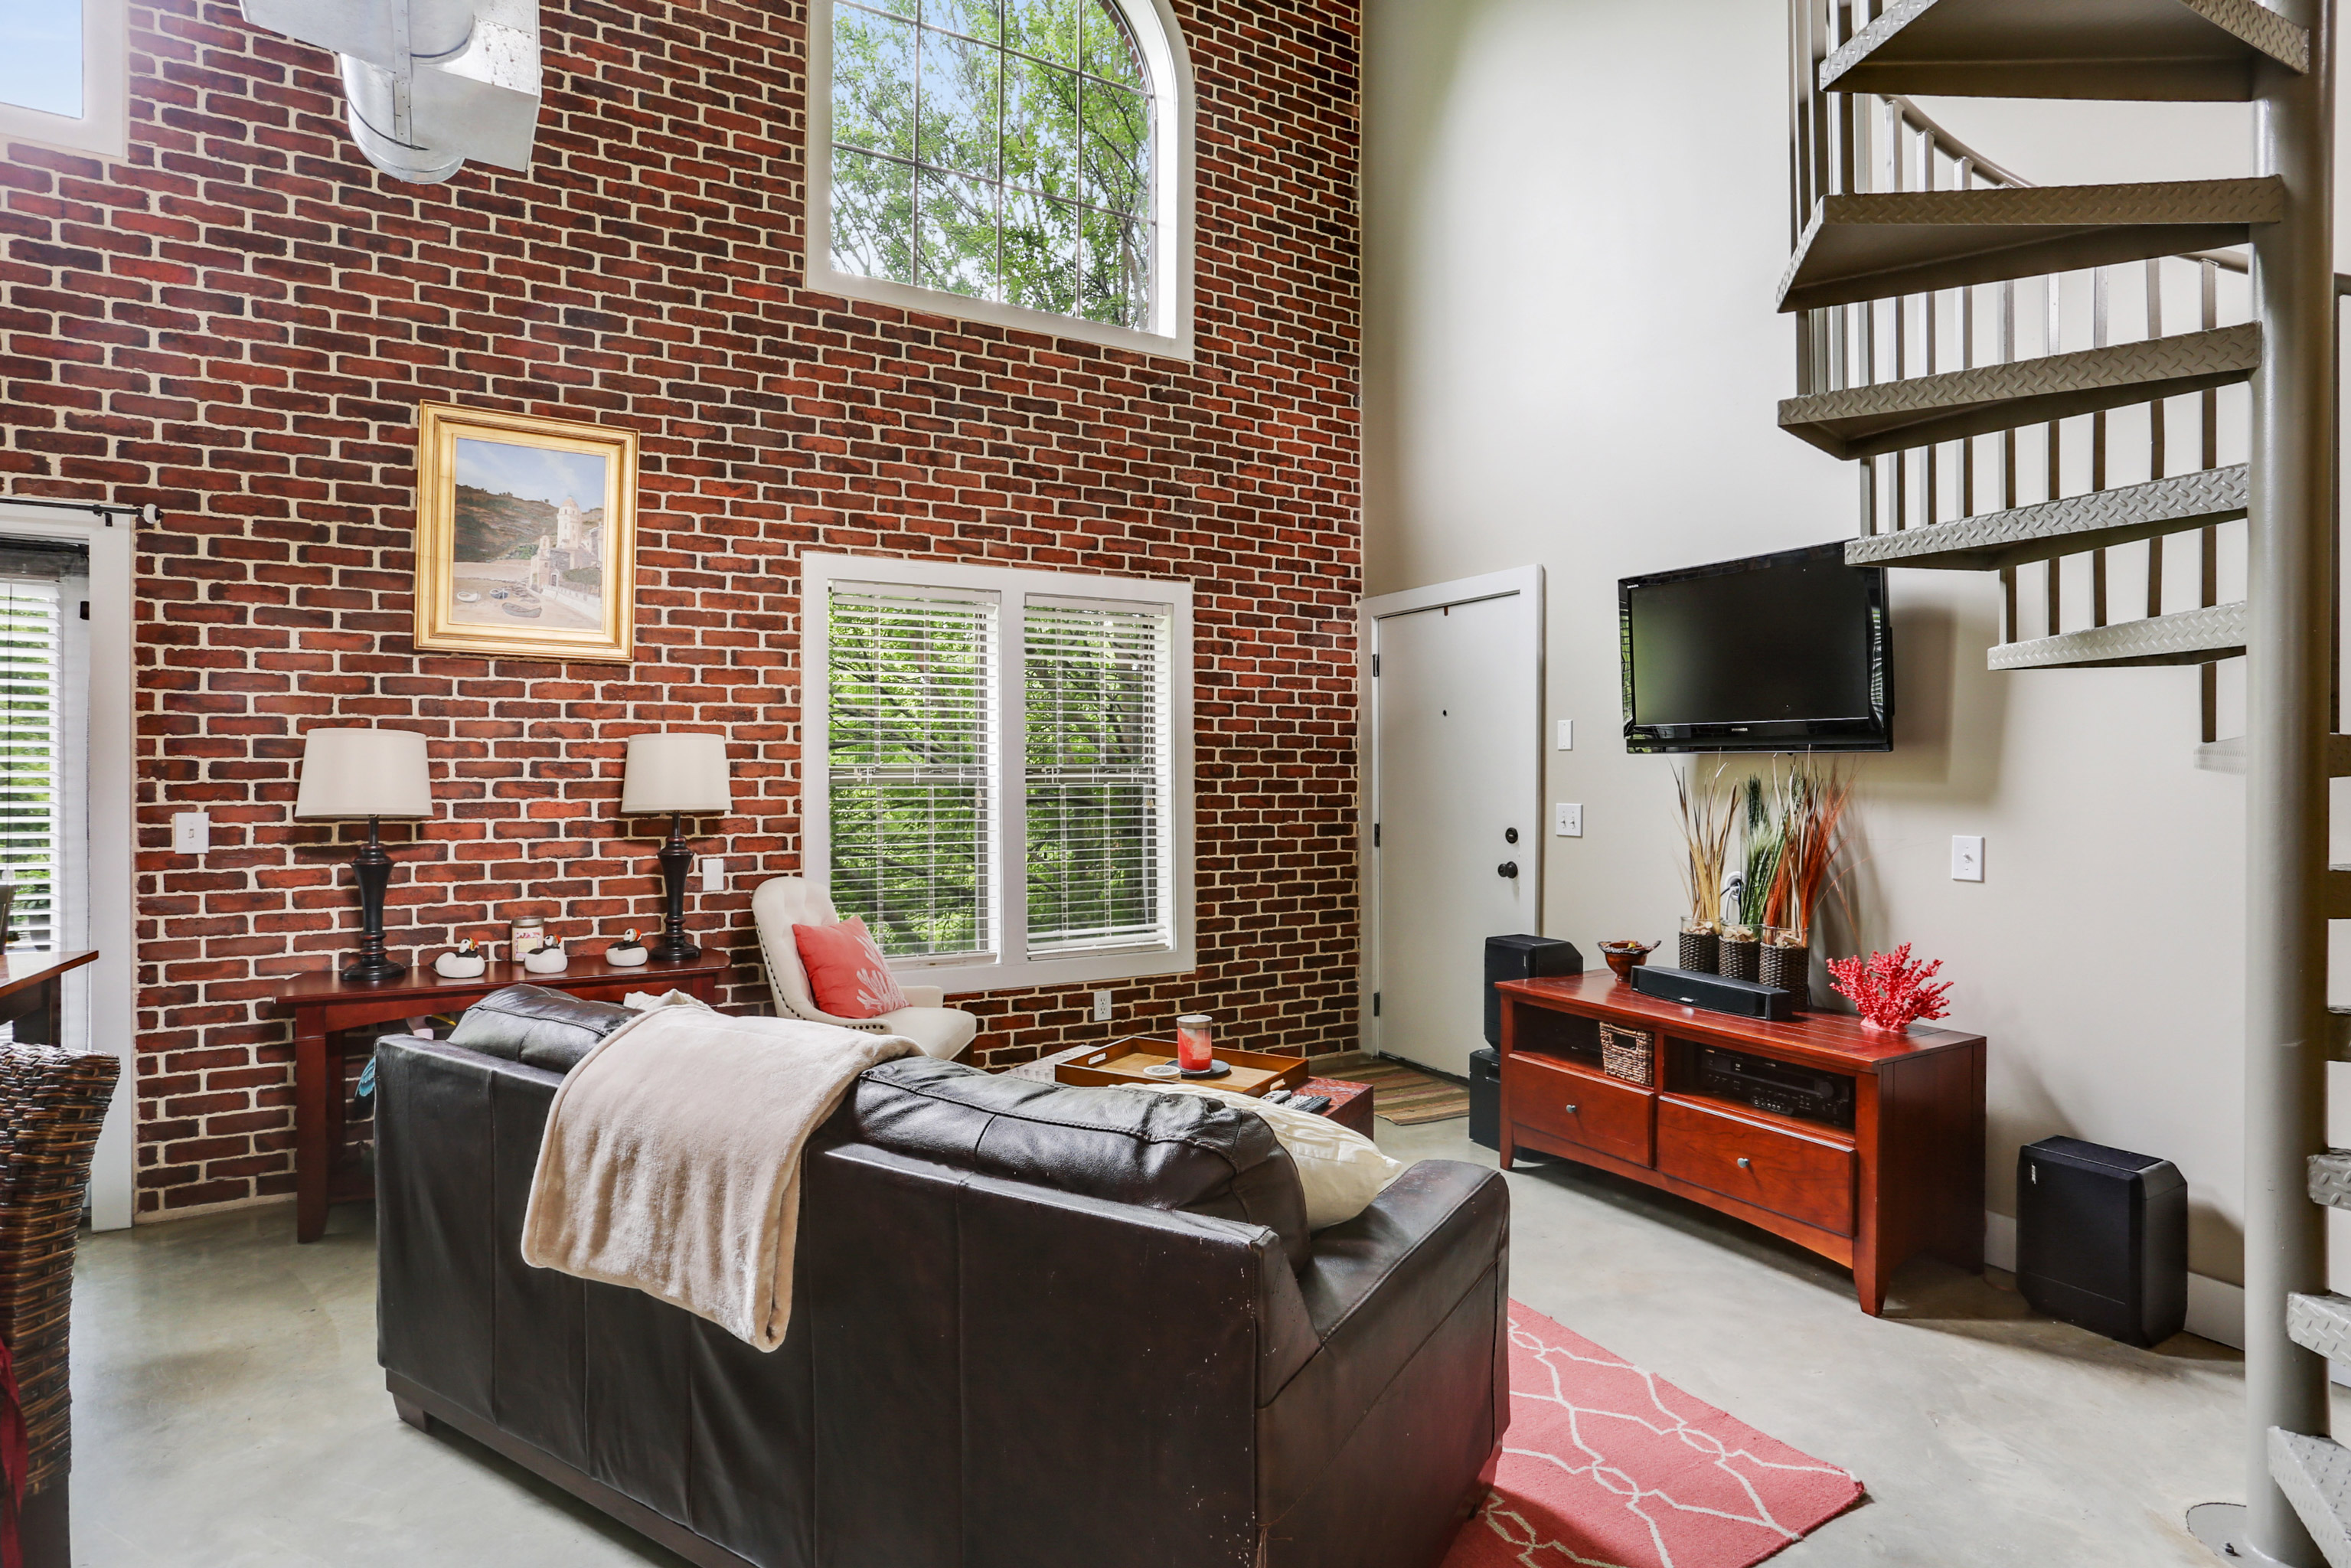 Single Family Home for Sale at STUNNING INTOWN LOFT 791 Wylie Street Atlanta, Georgia 30316 United States